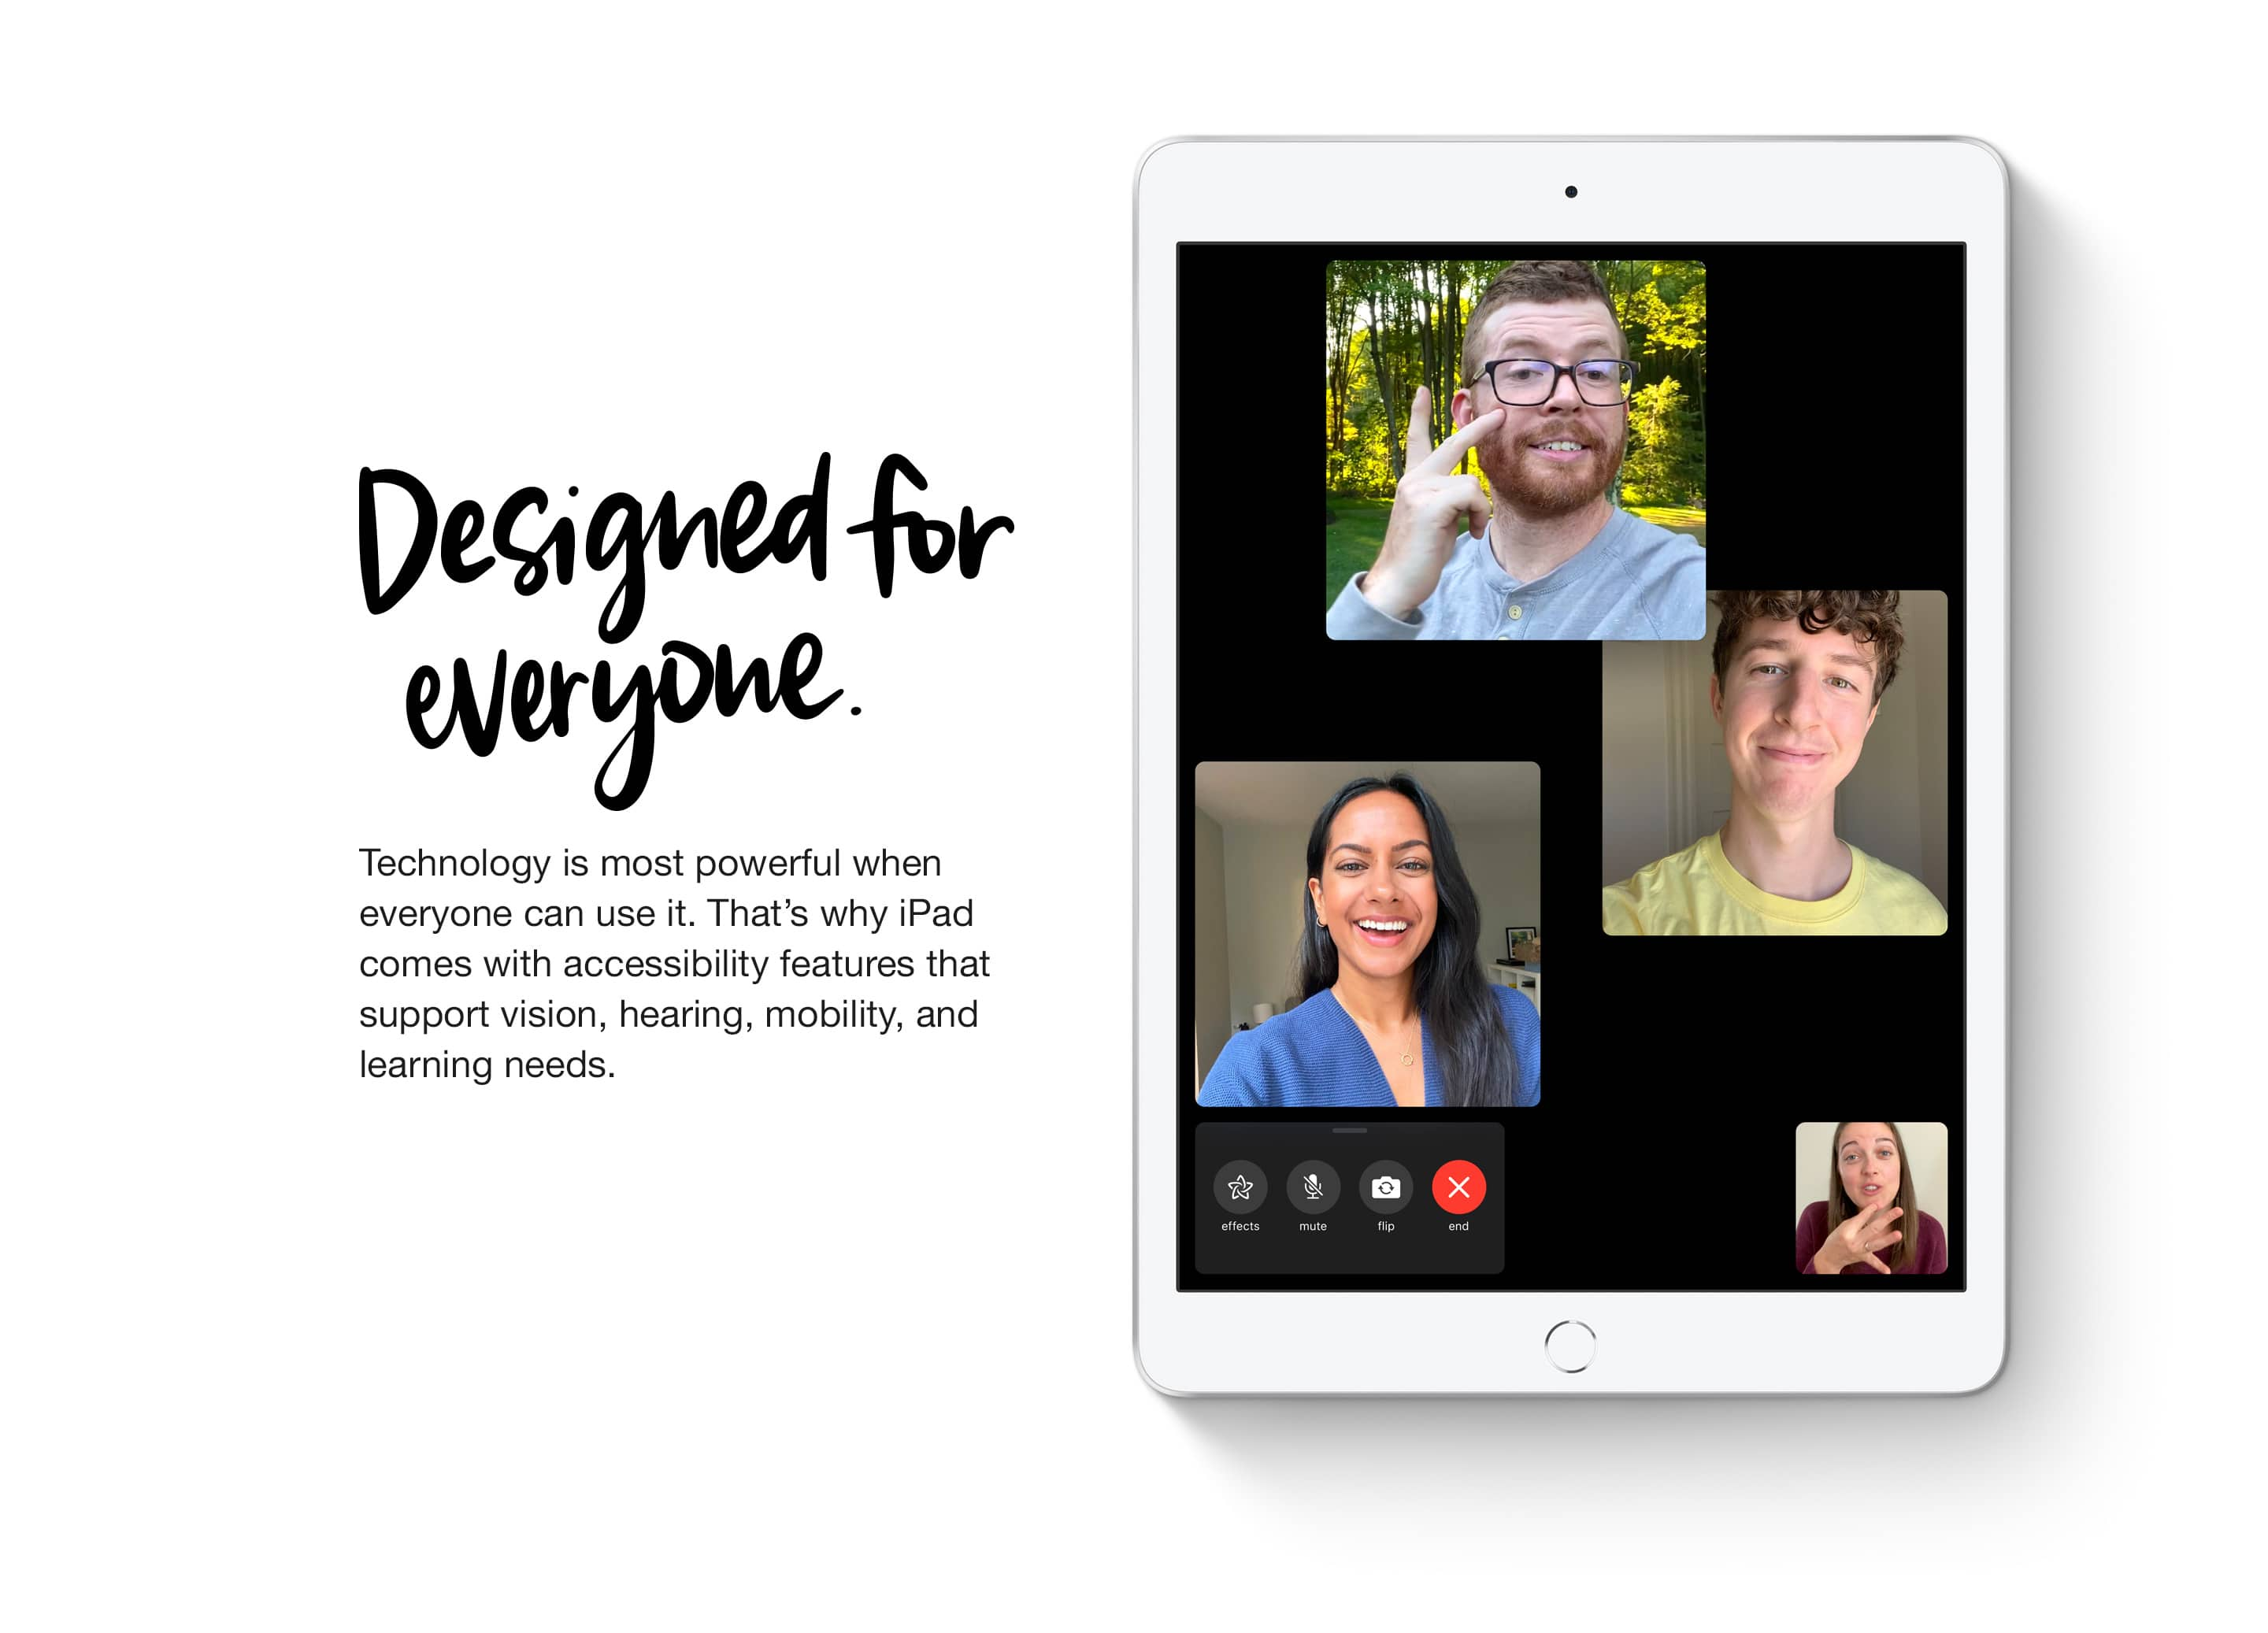 Designed for everyone. Technology is most powerful when everyone can use it. That's why iPad comes with accessibility features that support vision, hearing, mobility and learning needs.